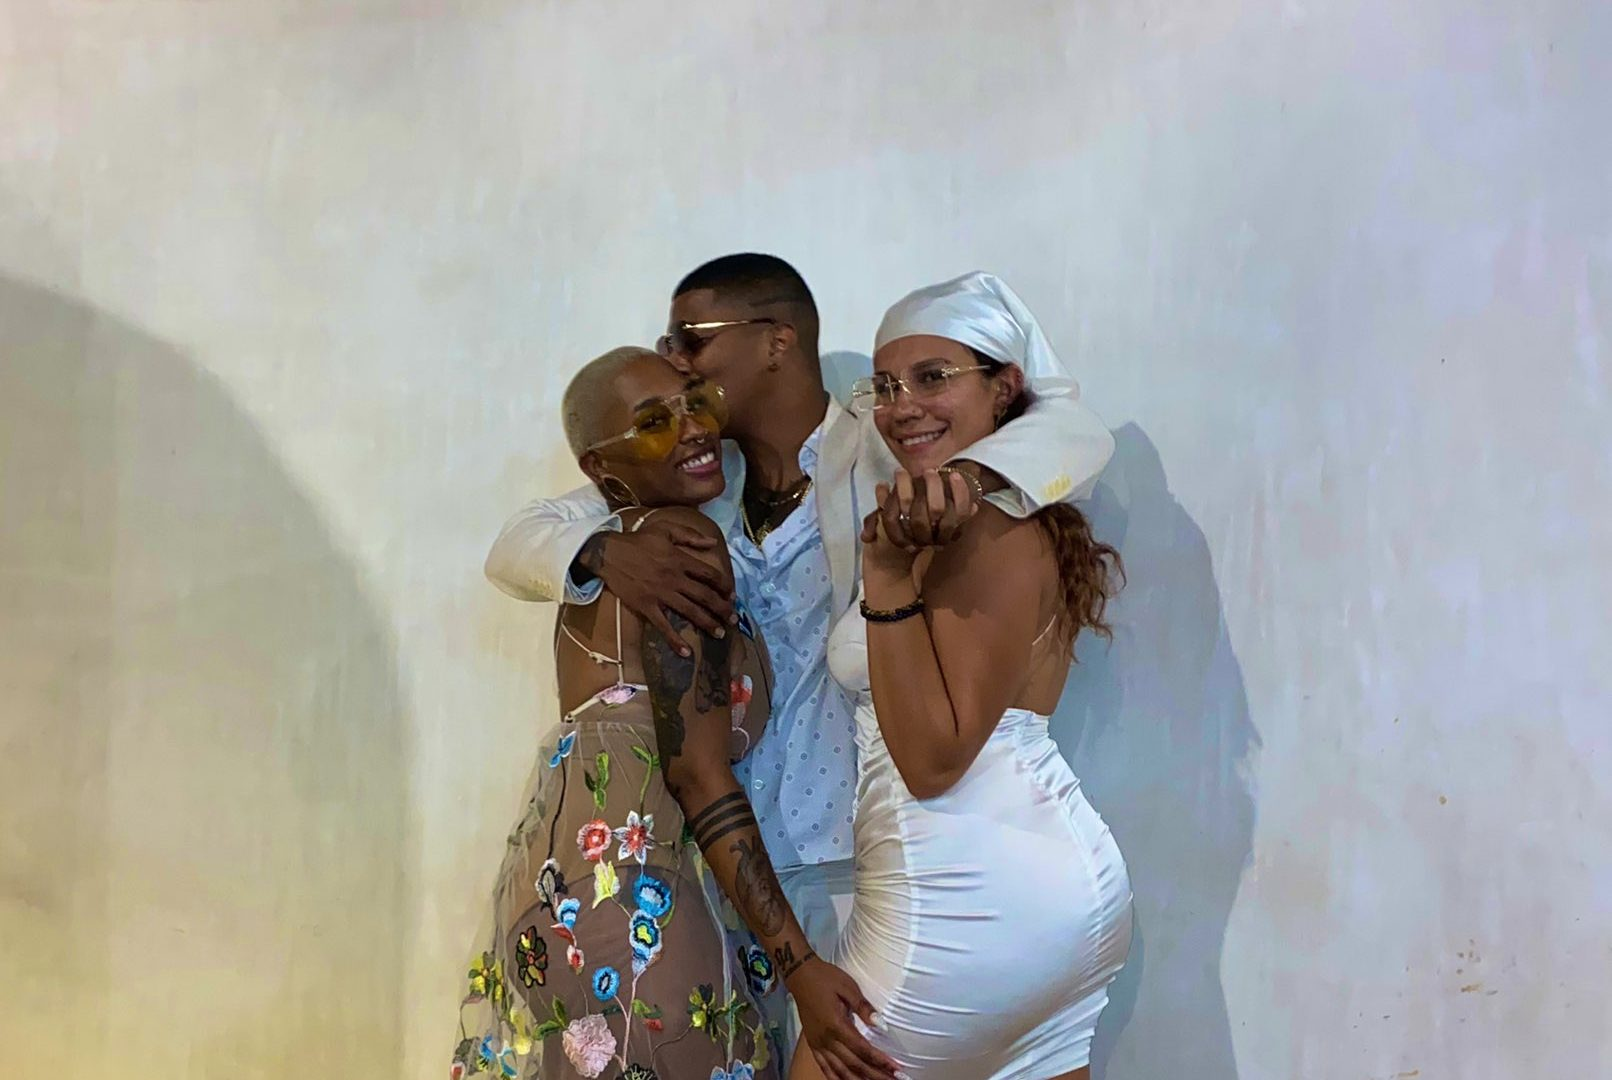 Man trends on social media after showing off his two girlfriends (photos) 3